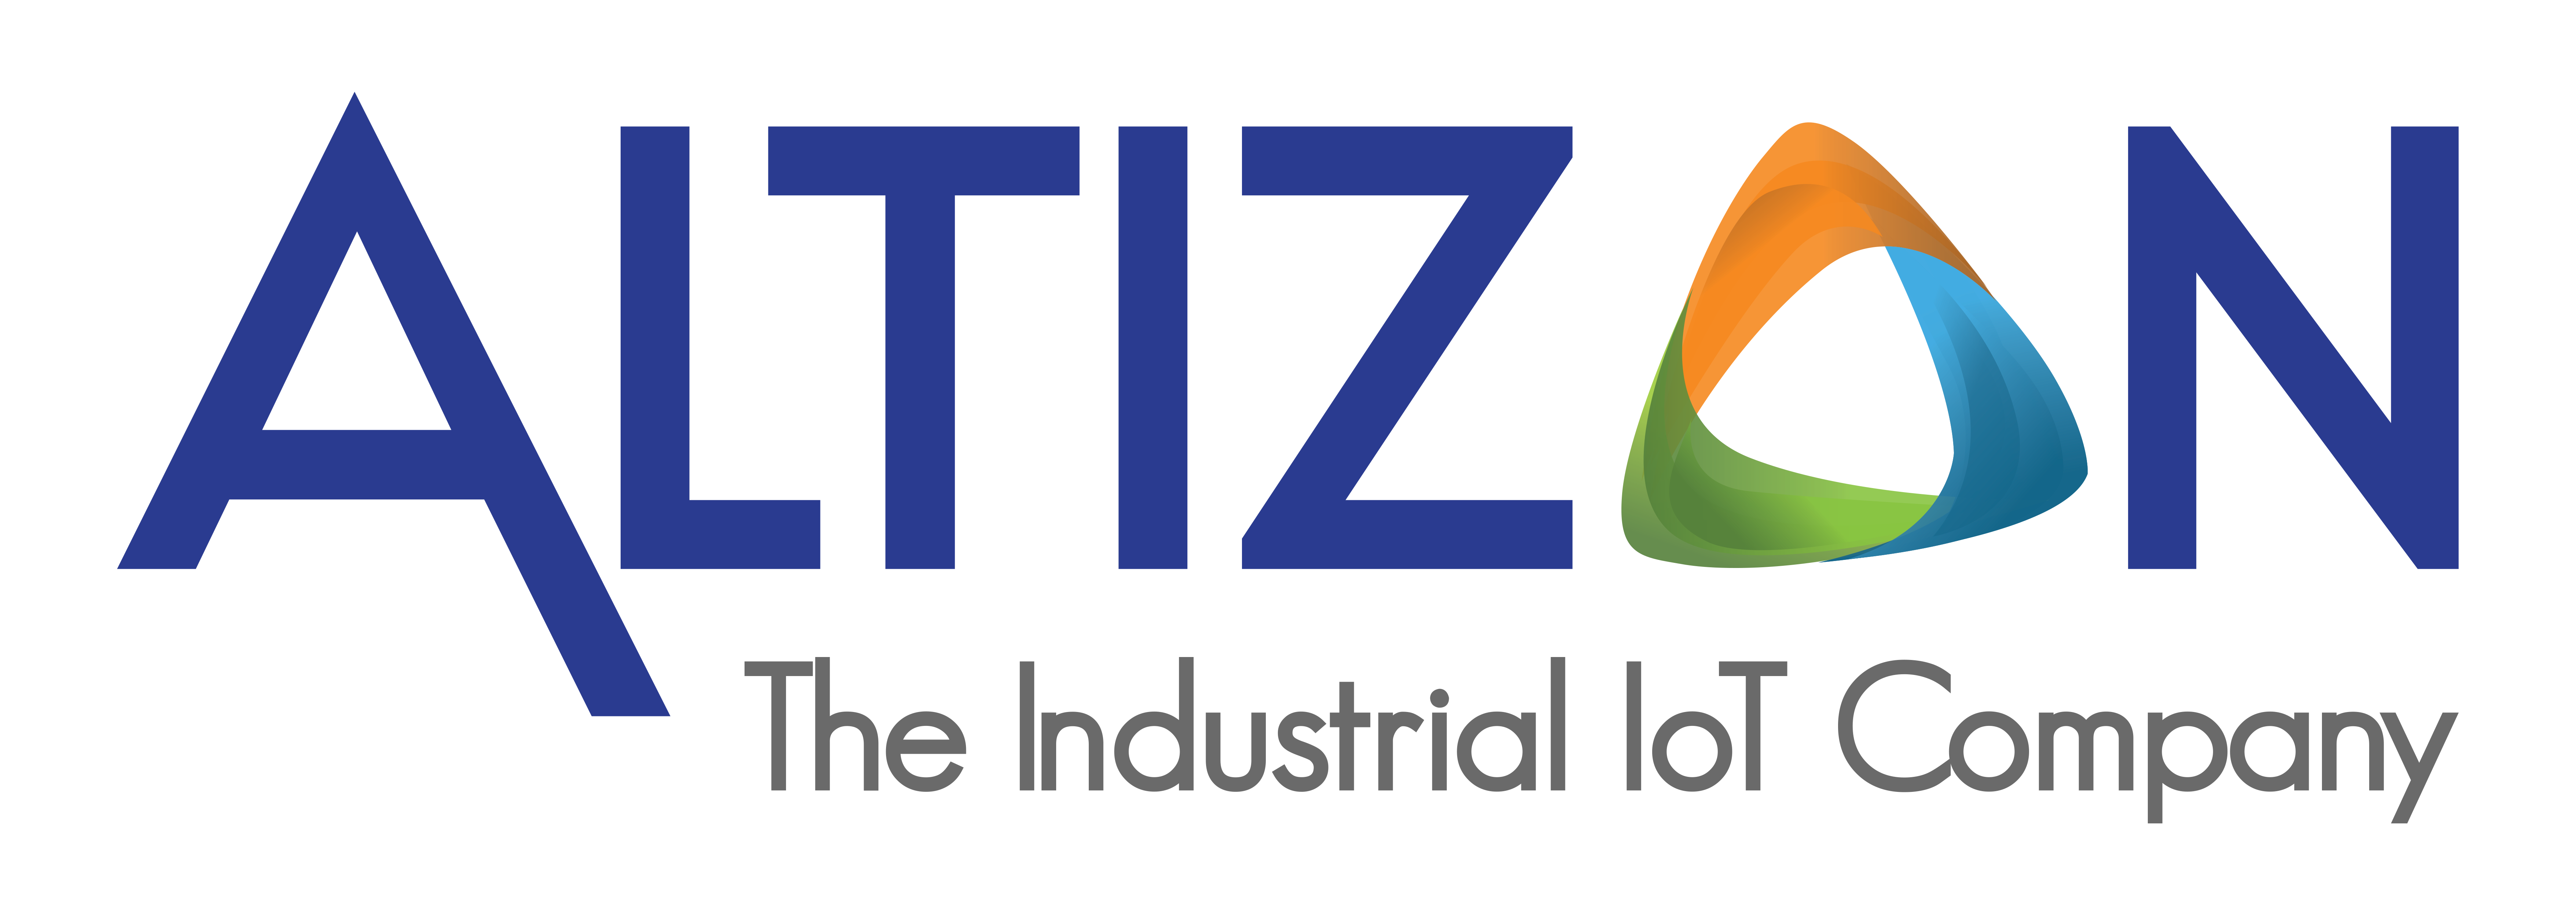 Altizon-Logo-Industrial-IoT